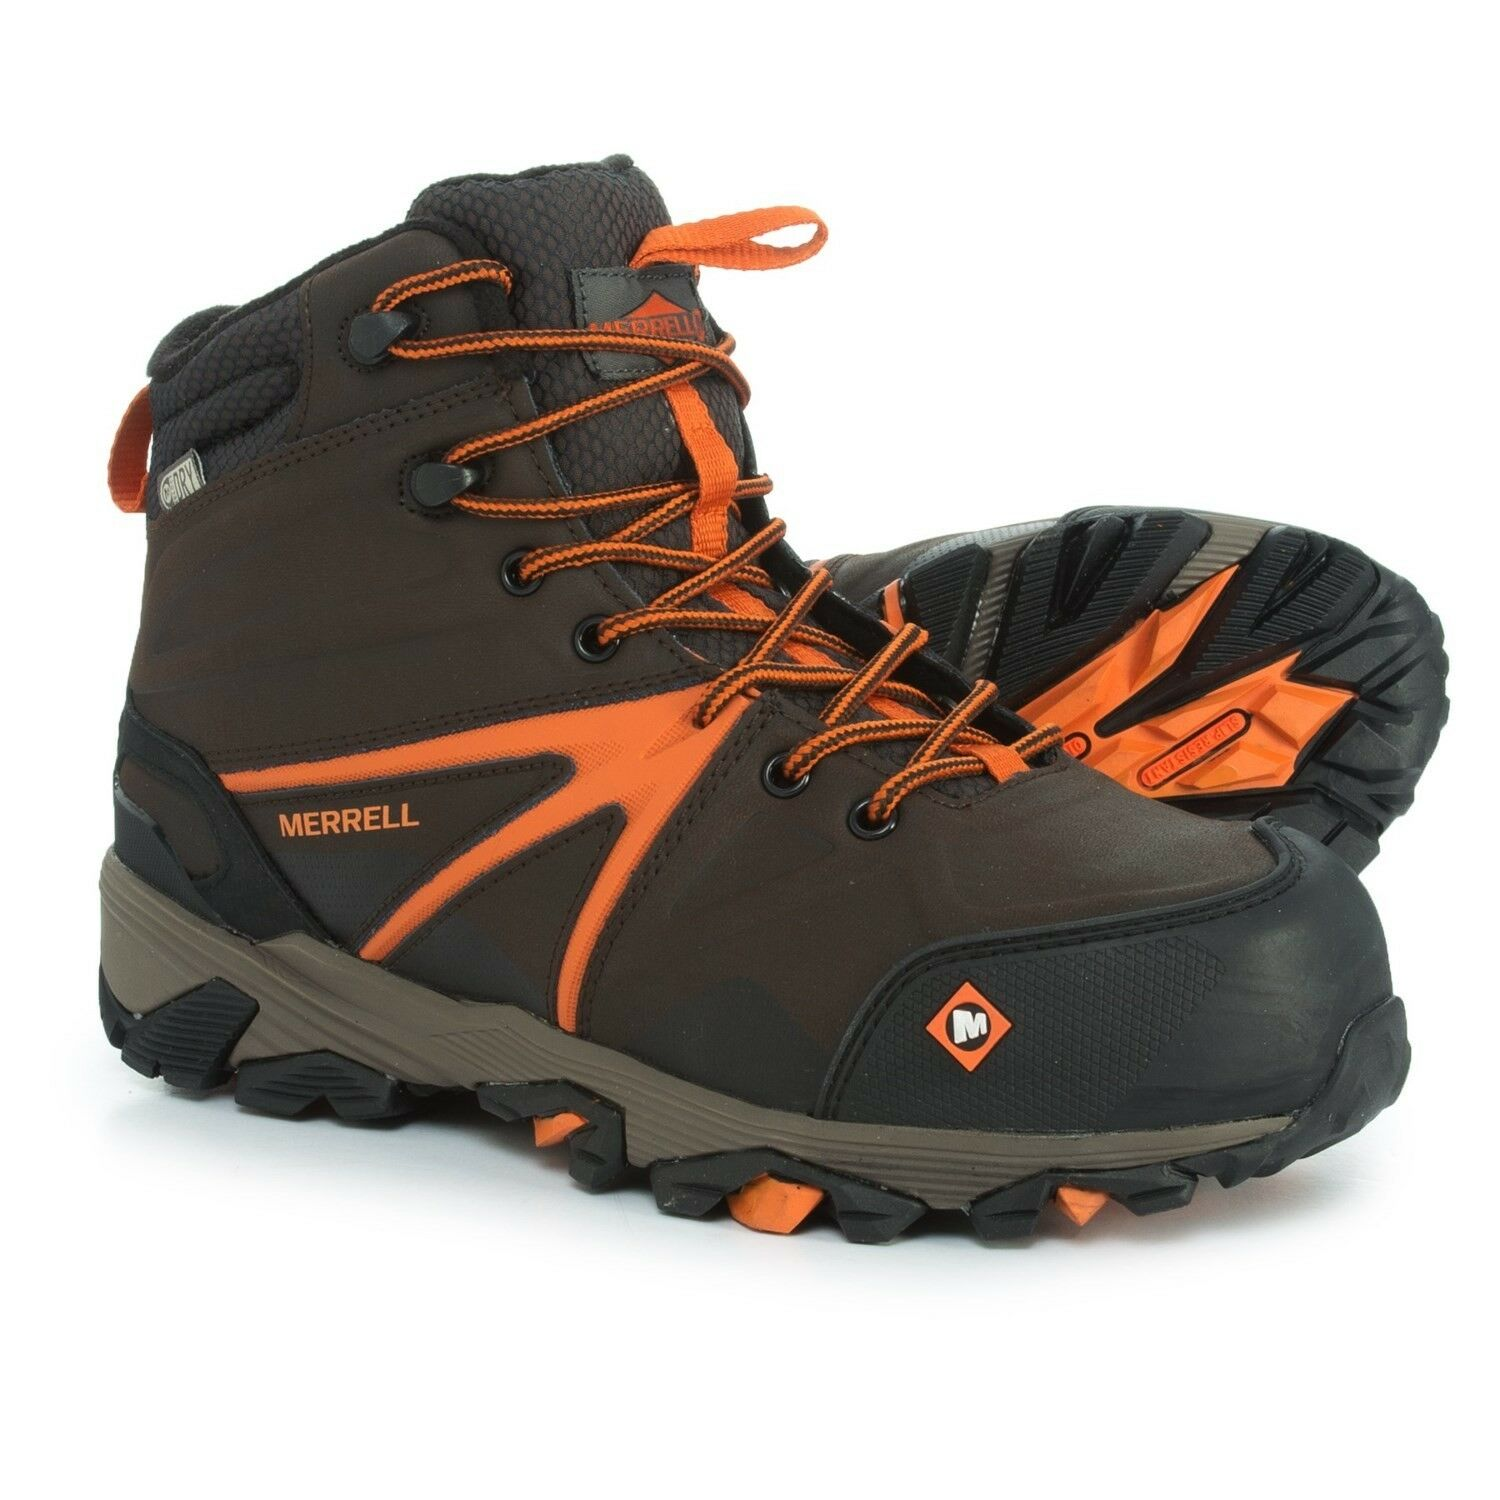 Merrell Trailwork Mid Work Stiefel-Waterproof,Composite Safety Toe (Men) Größe 14